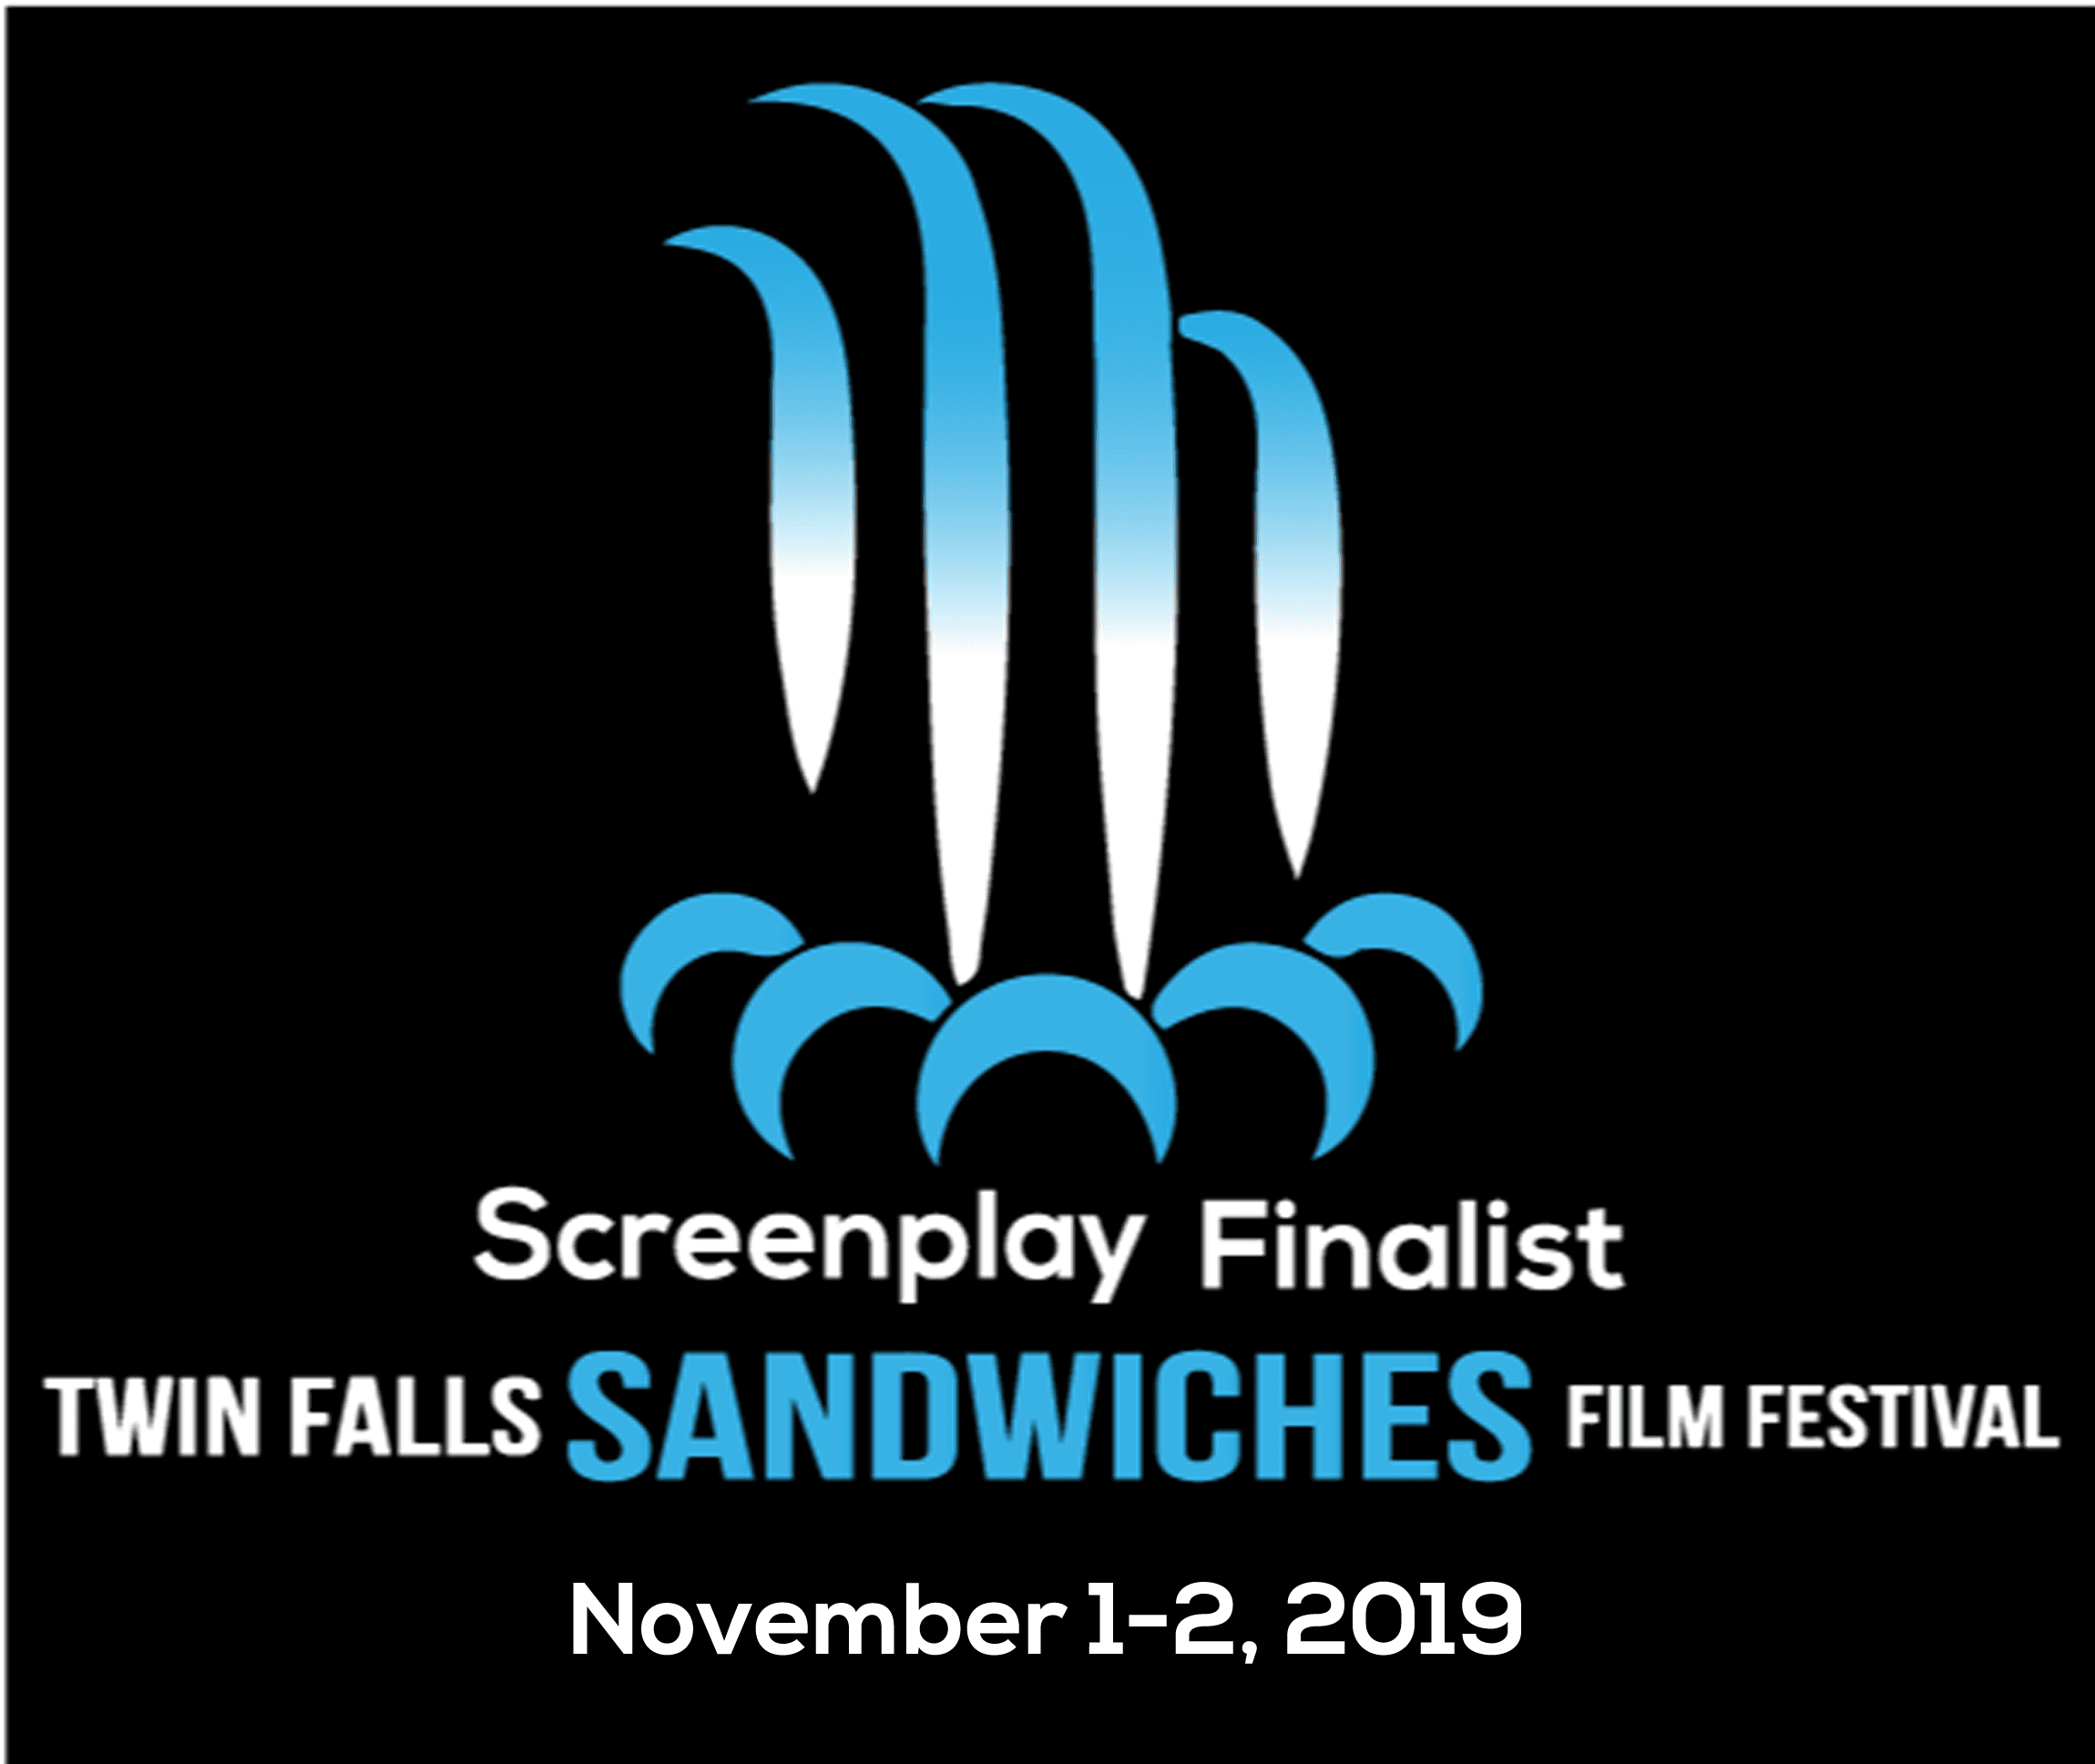 TFSFF Screenplay Finalist Award 2019